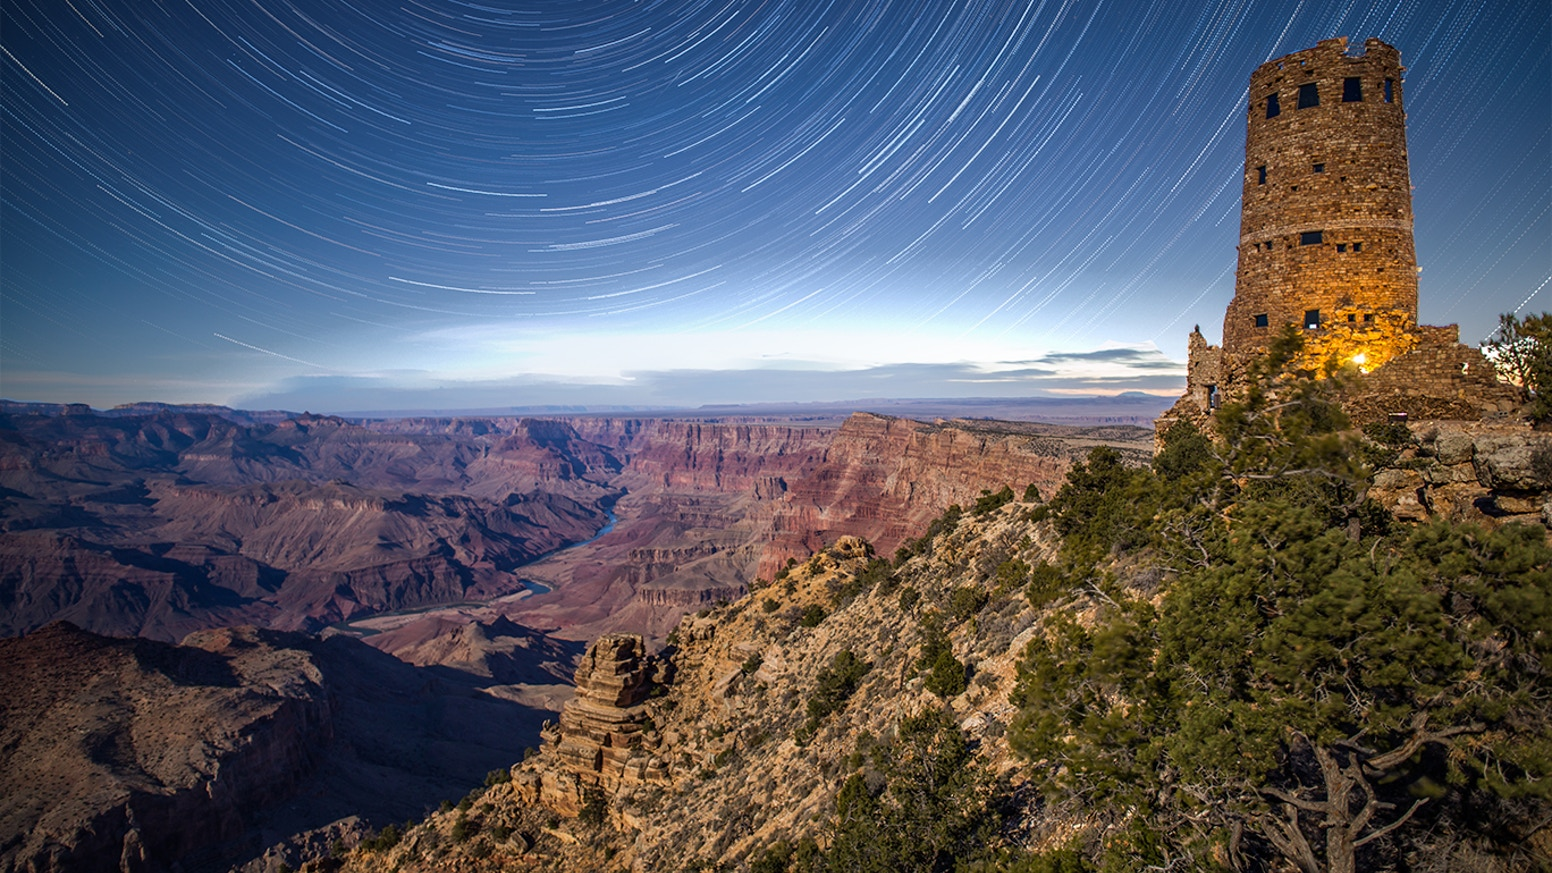 CD & DVD sharing Hopi cultural connections to Grand Canyon, with music and video recorded at Grand Canyon National Park.